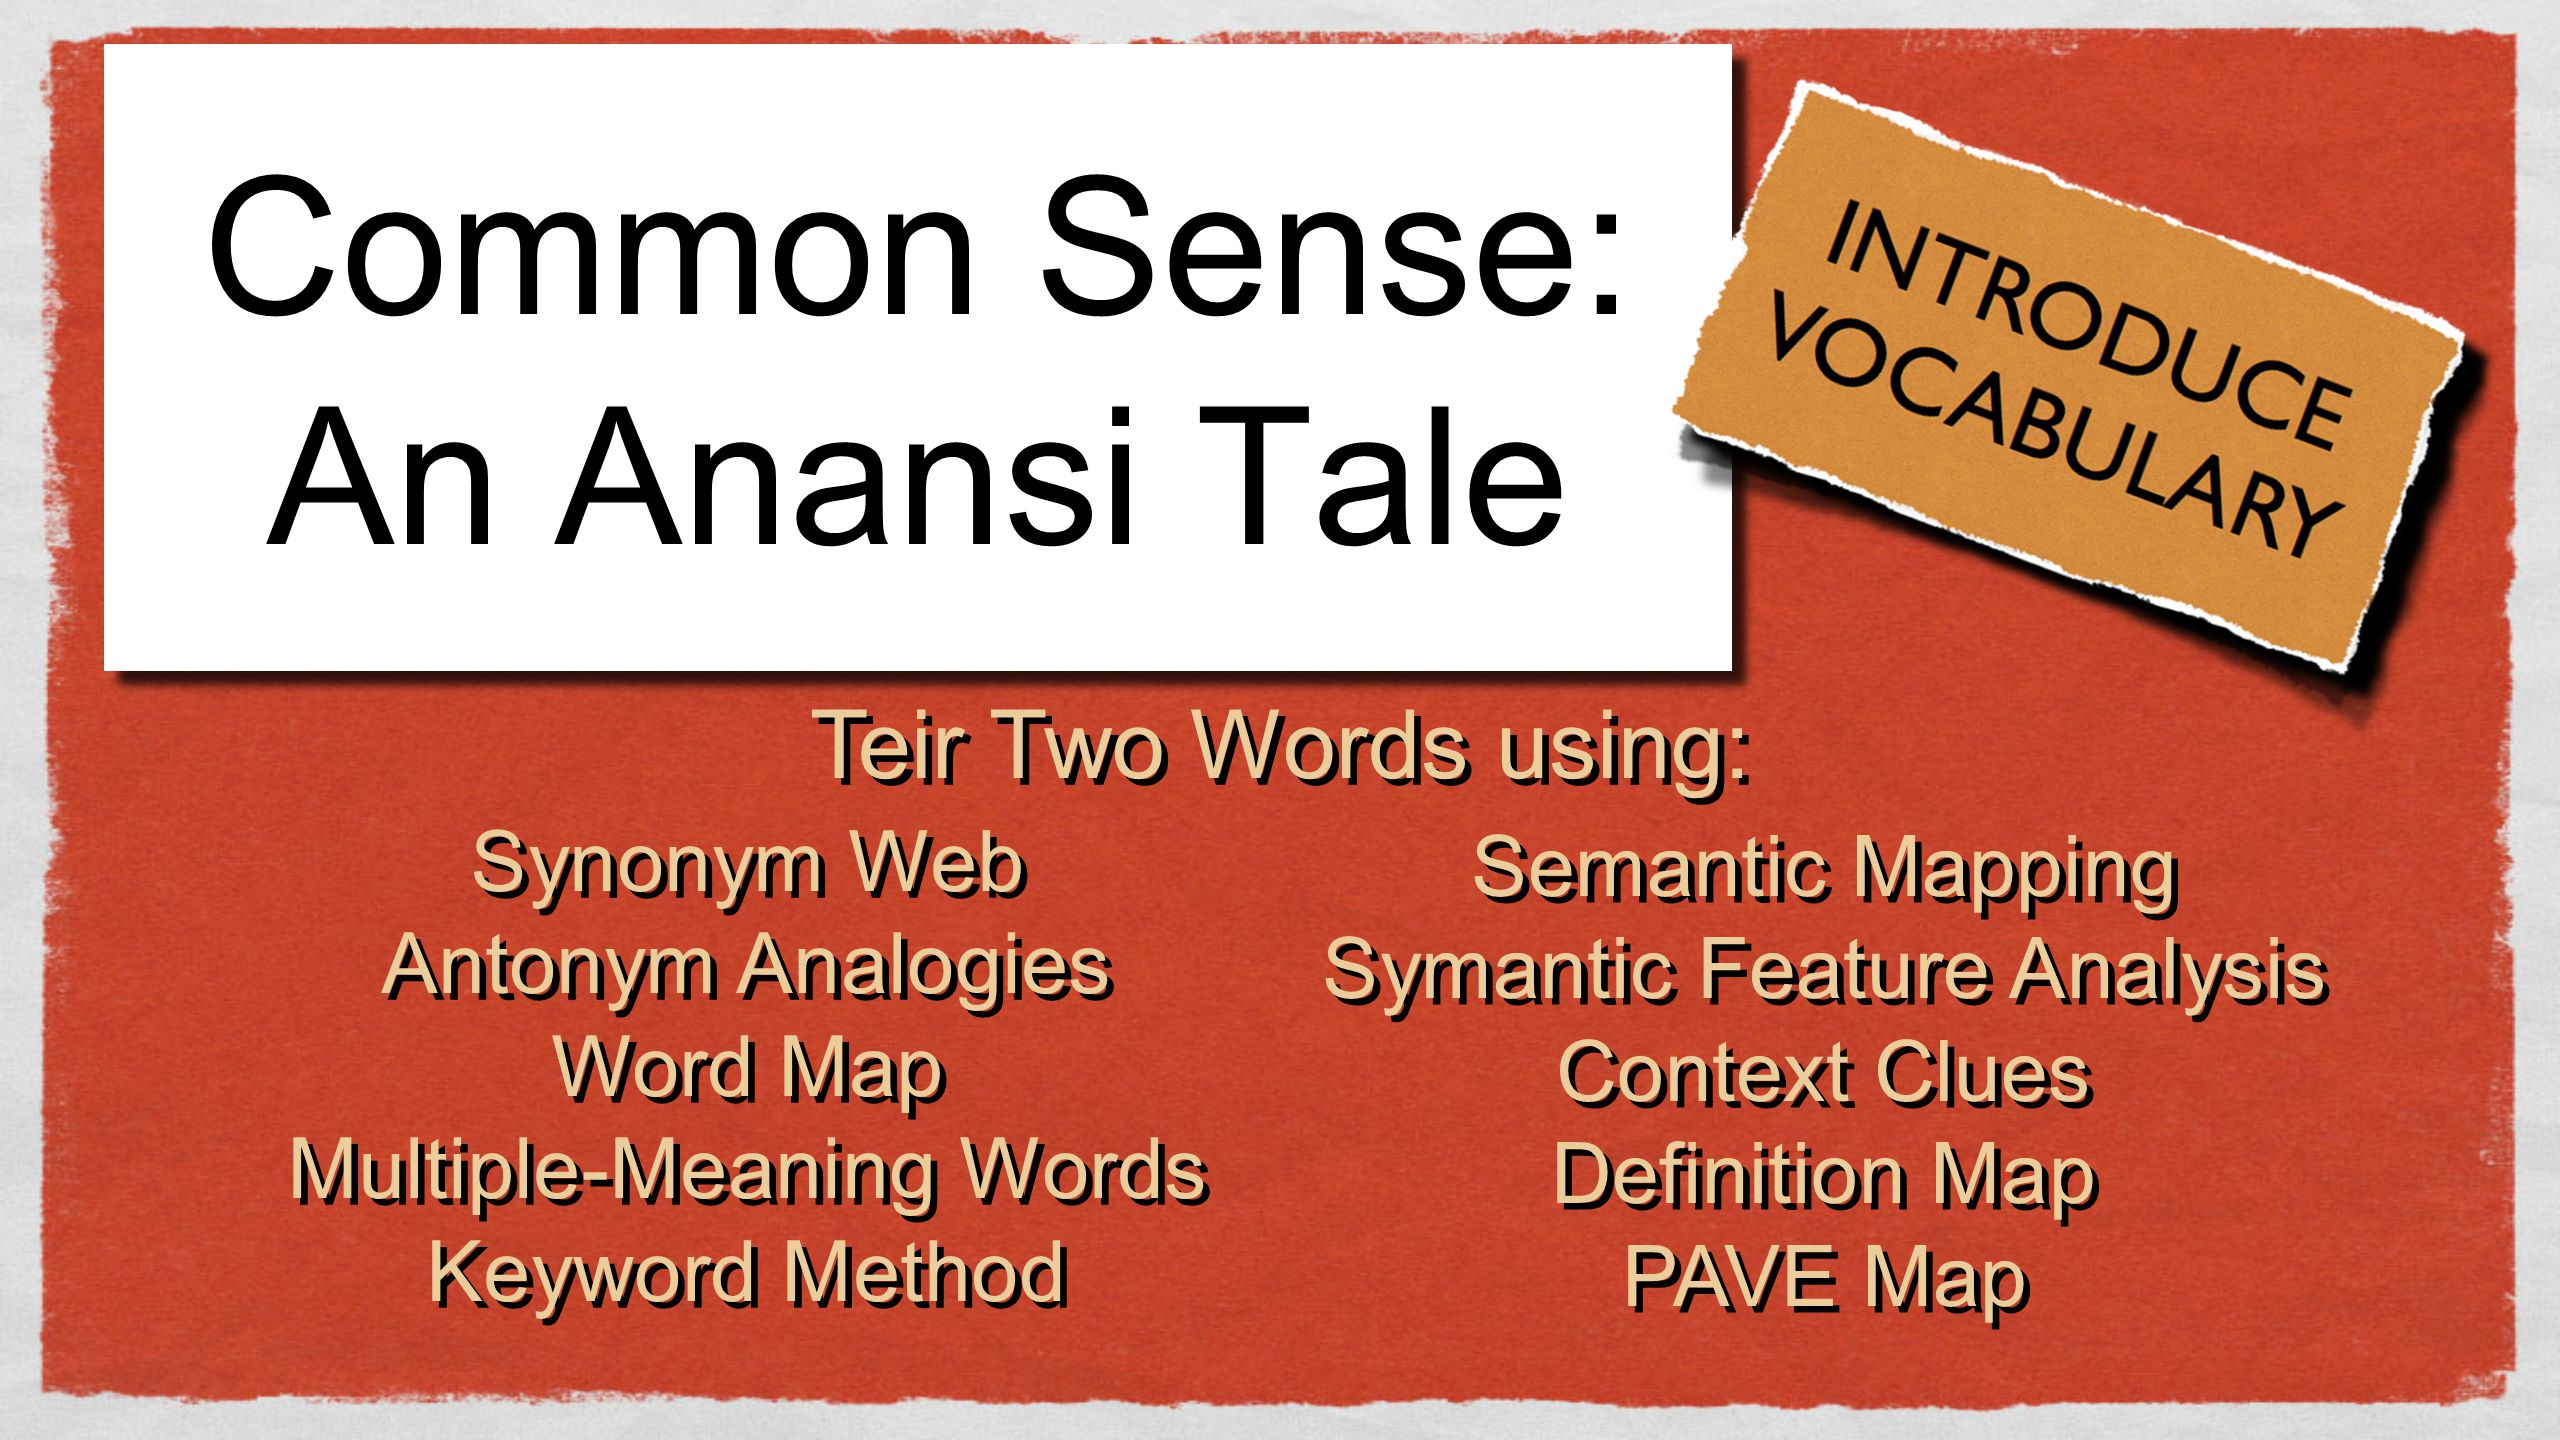 Common Sense: An Anansi Tale Synonym Web Antonym Analogies Word Map Multiple-Meaning Words Keyword Method Synonym Web Antonym Analogies Word Map Multi